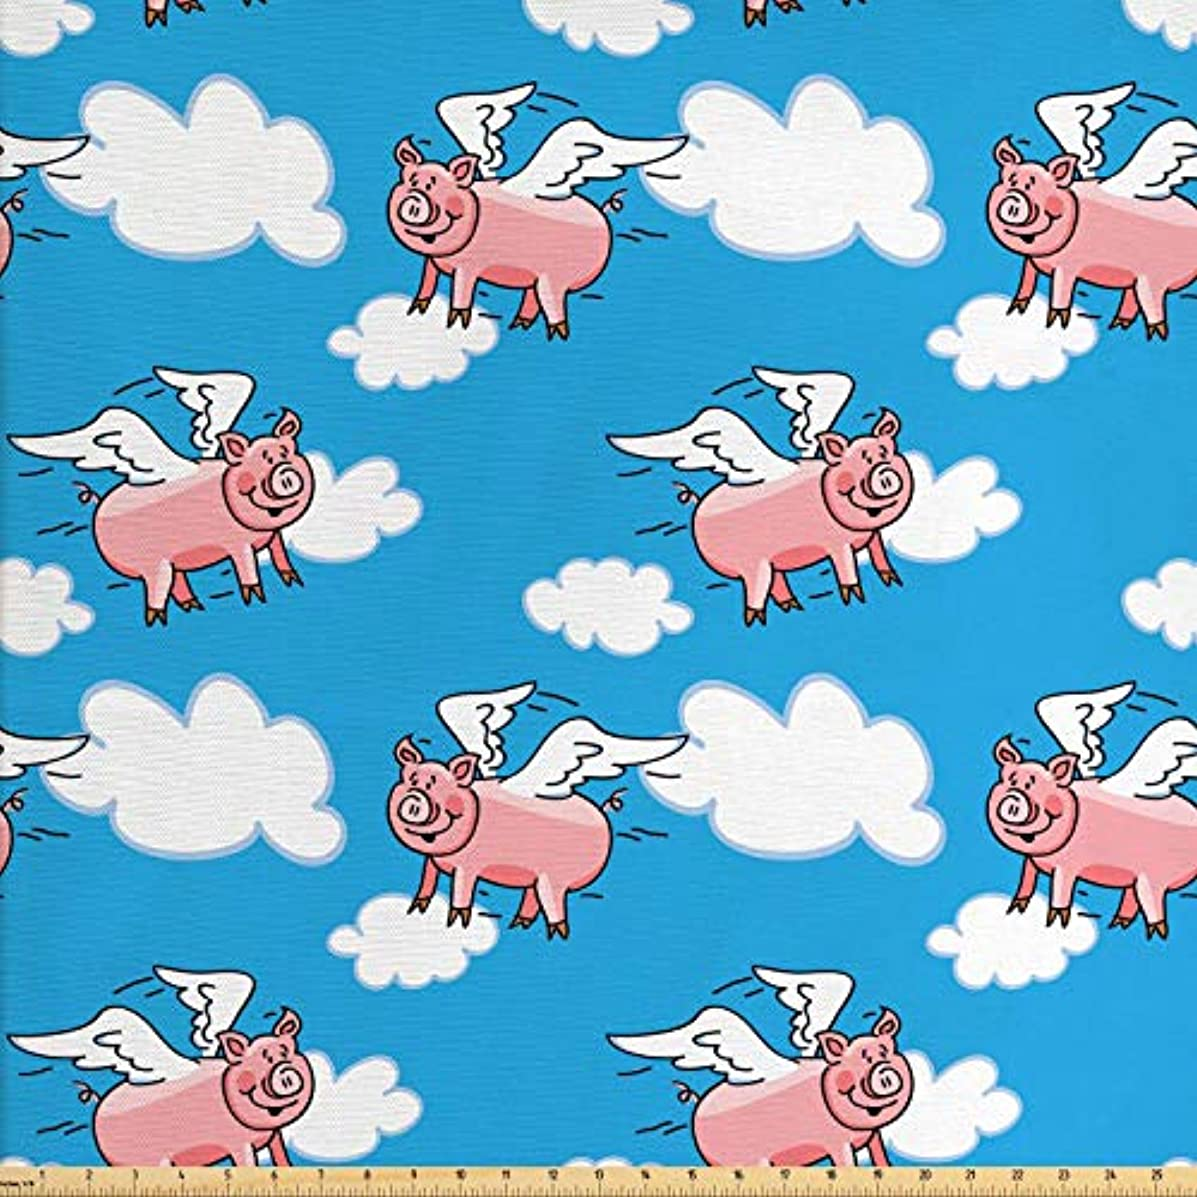 Lunarable Pig Fabric by The Yard, Flying Pig Cartoon Style Characters with Wings The Saying Great Kid Clouds, Decorative Fabric for Upholstery and Home Accents, 2 Yards, Blue White Pale Pink